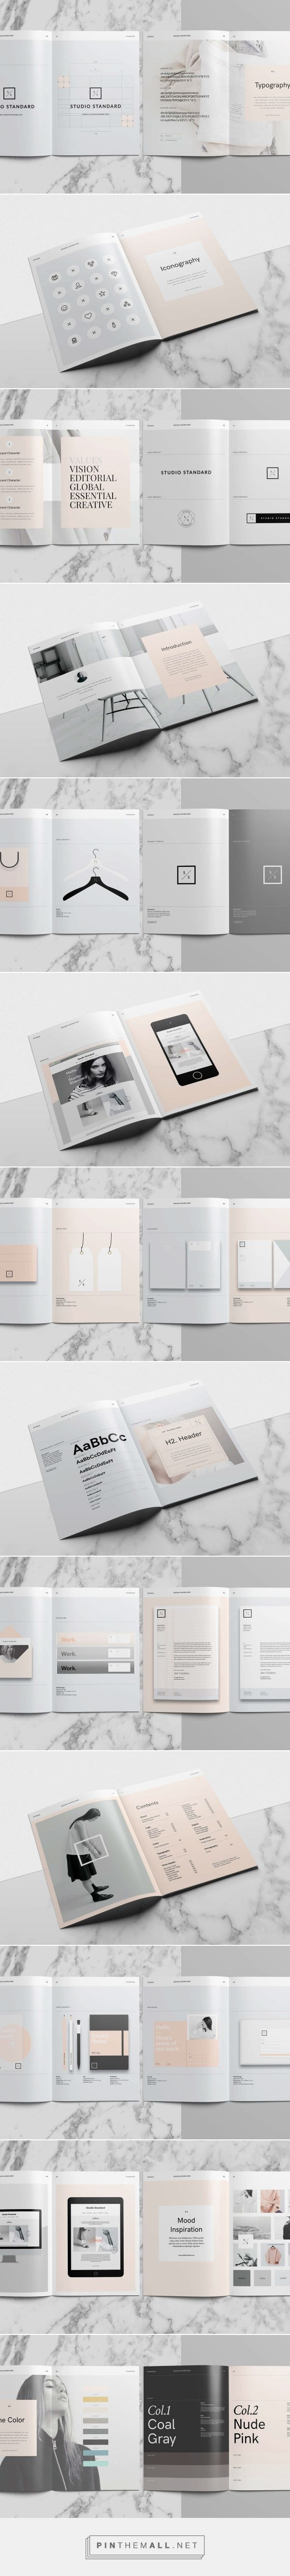 Design guidelines: Studio Standards | Abduzeedo Design Inspiration - created via…